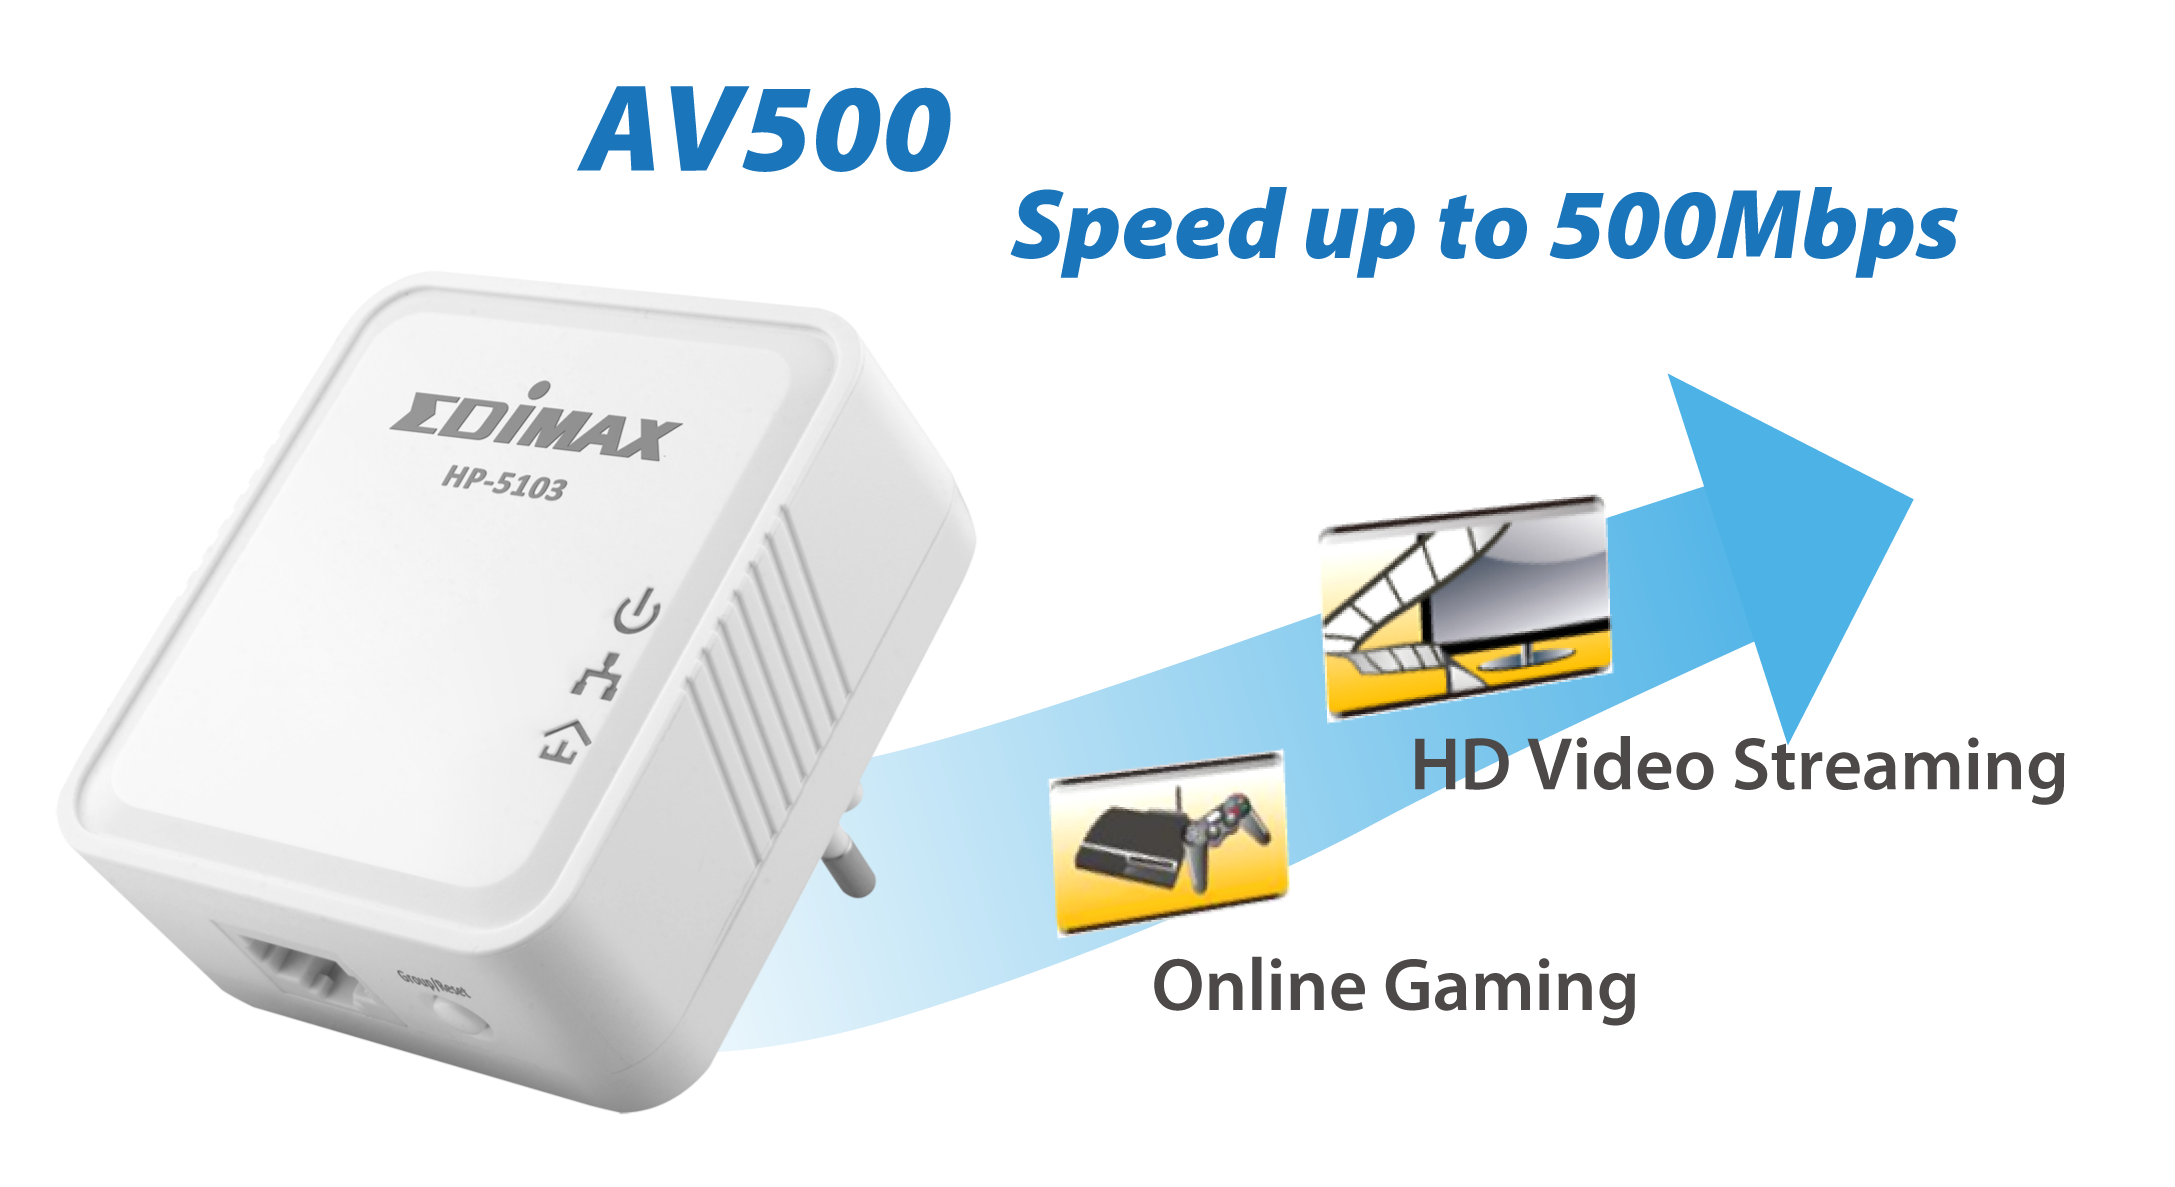 Edimax Powerline Av500 Nano Adapter Kit Home Wiring Network Hp 5103 High Speed Hd Video Streaming